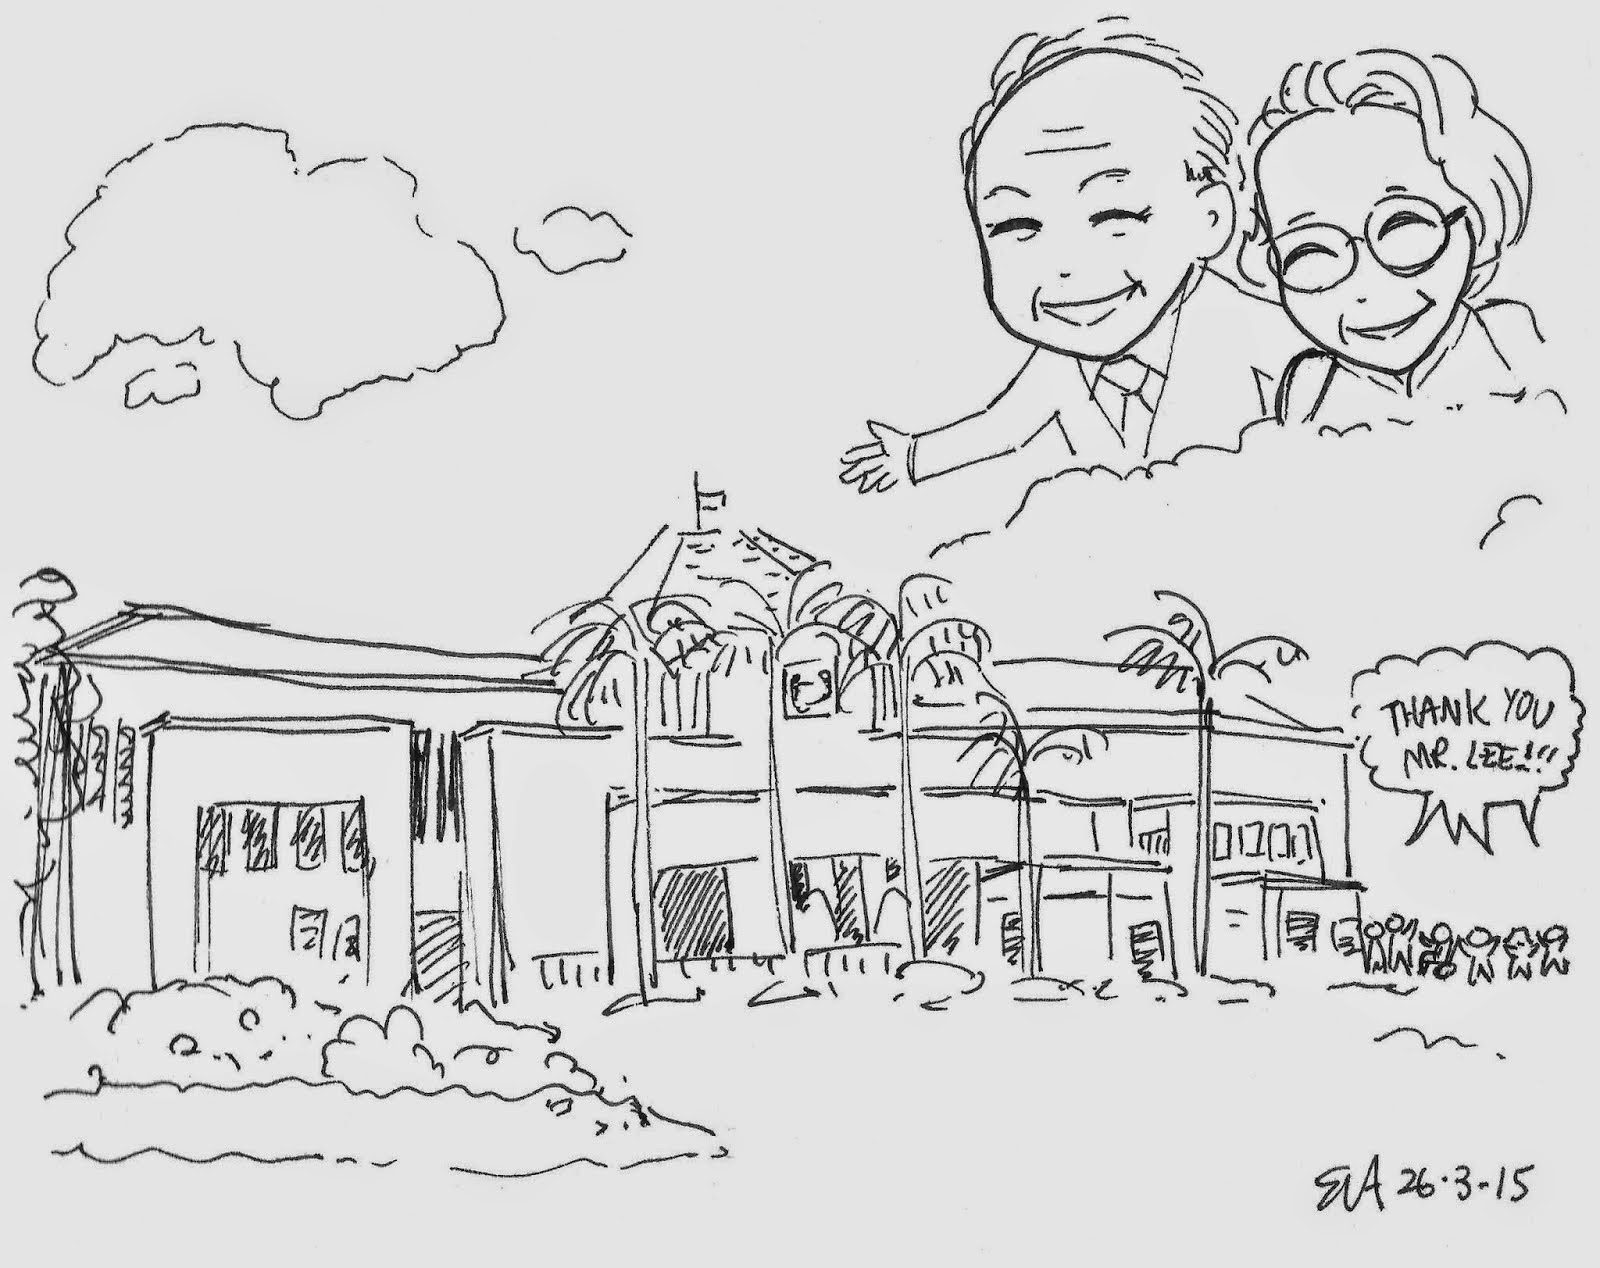 Mr and Mrs Lee Kuan Yew, 永远怀念你  - Miss you forever